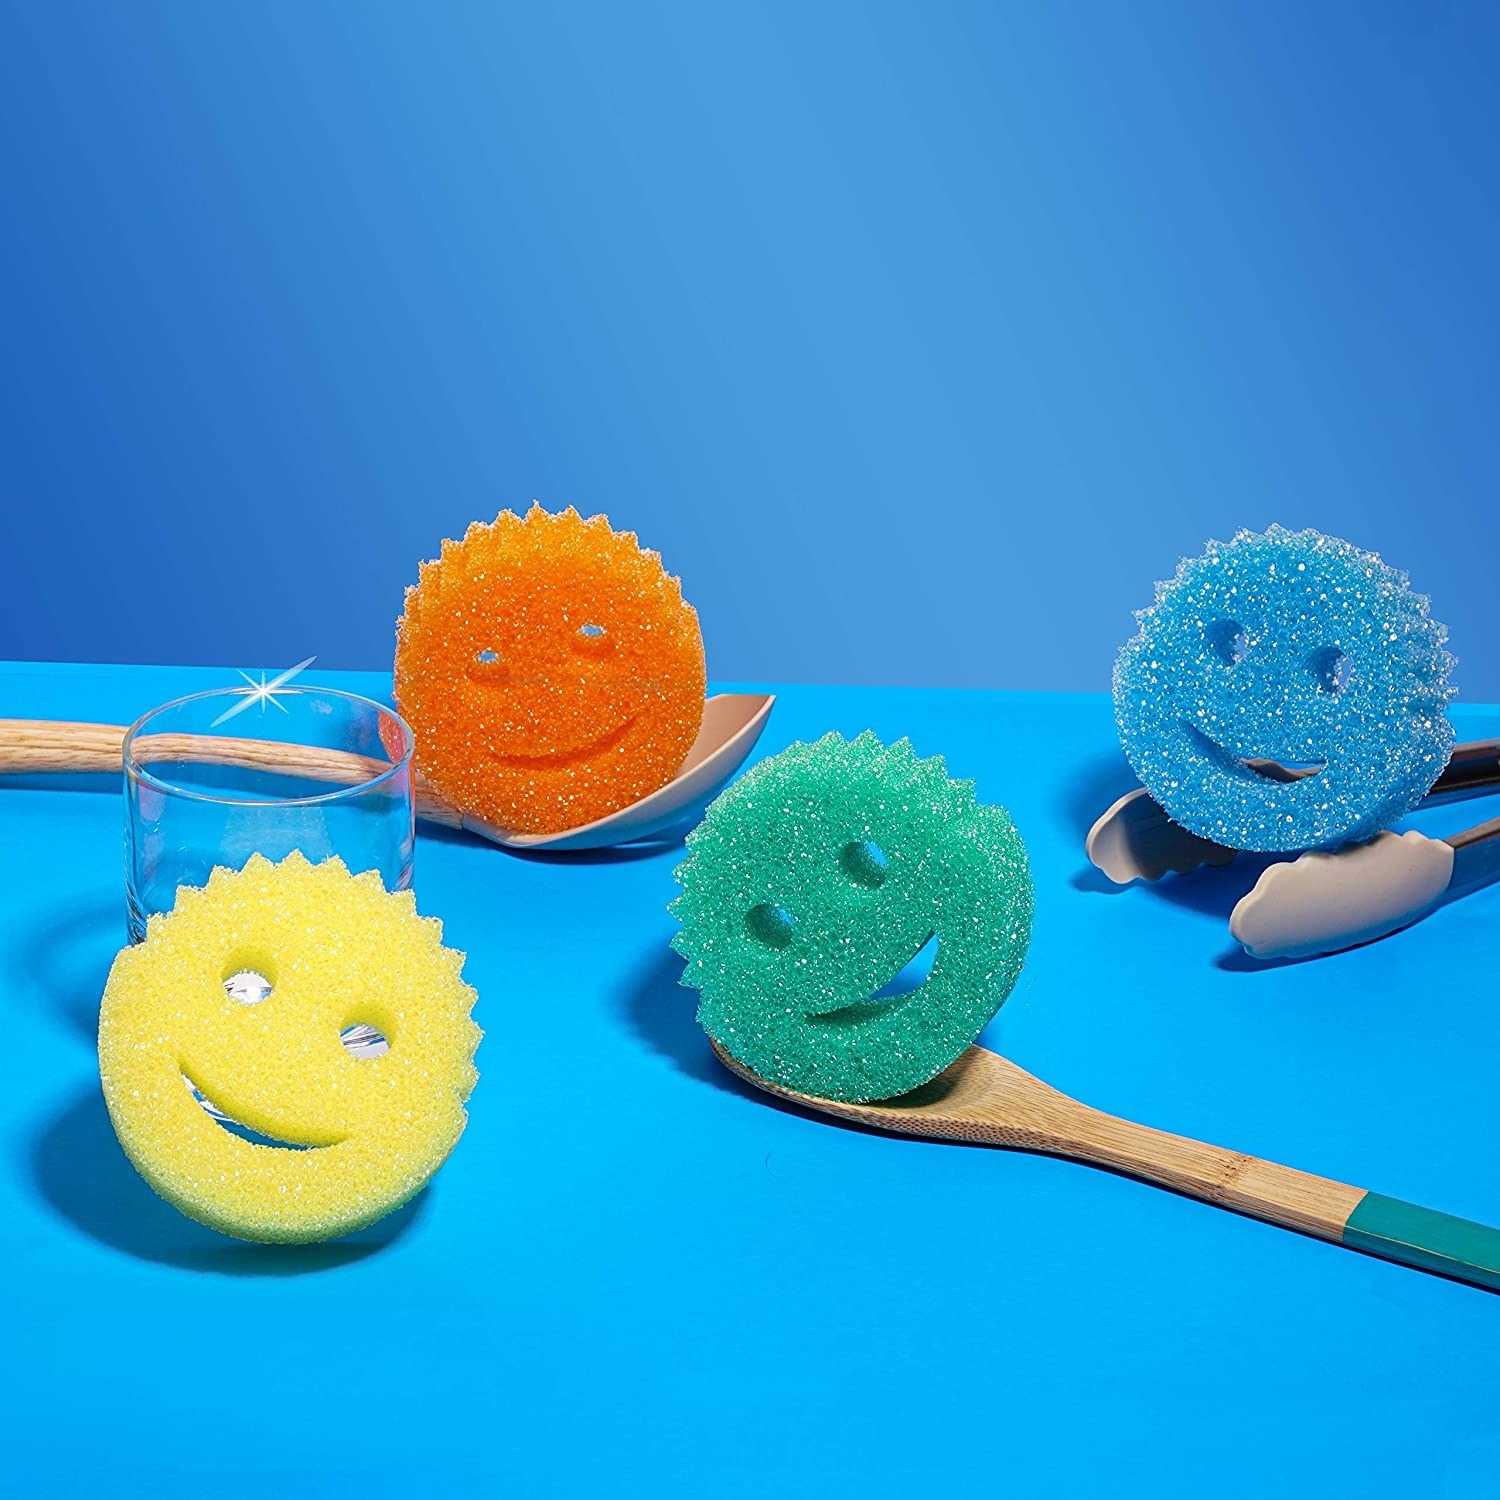 Four round, 1-inch thick smiley-faces sponges with two holes for eyes and a crescent-shaped hole for a mouth